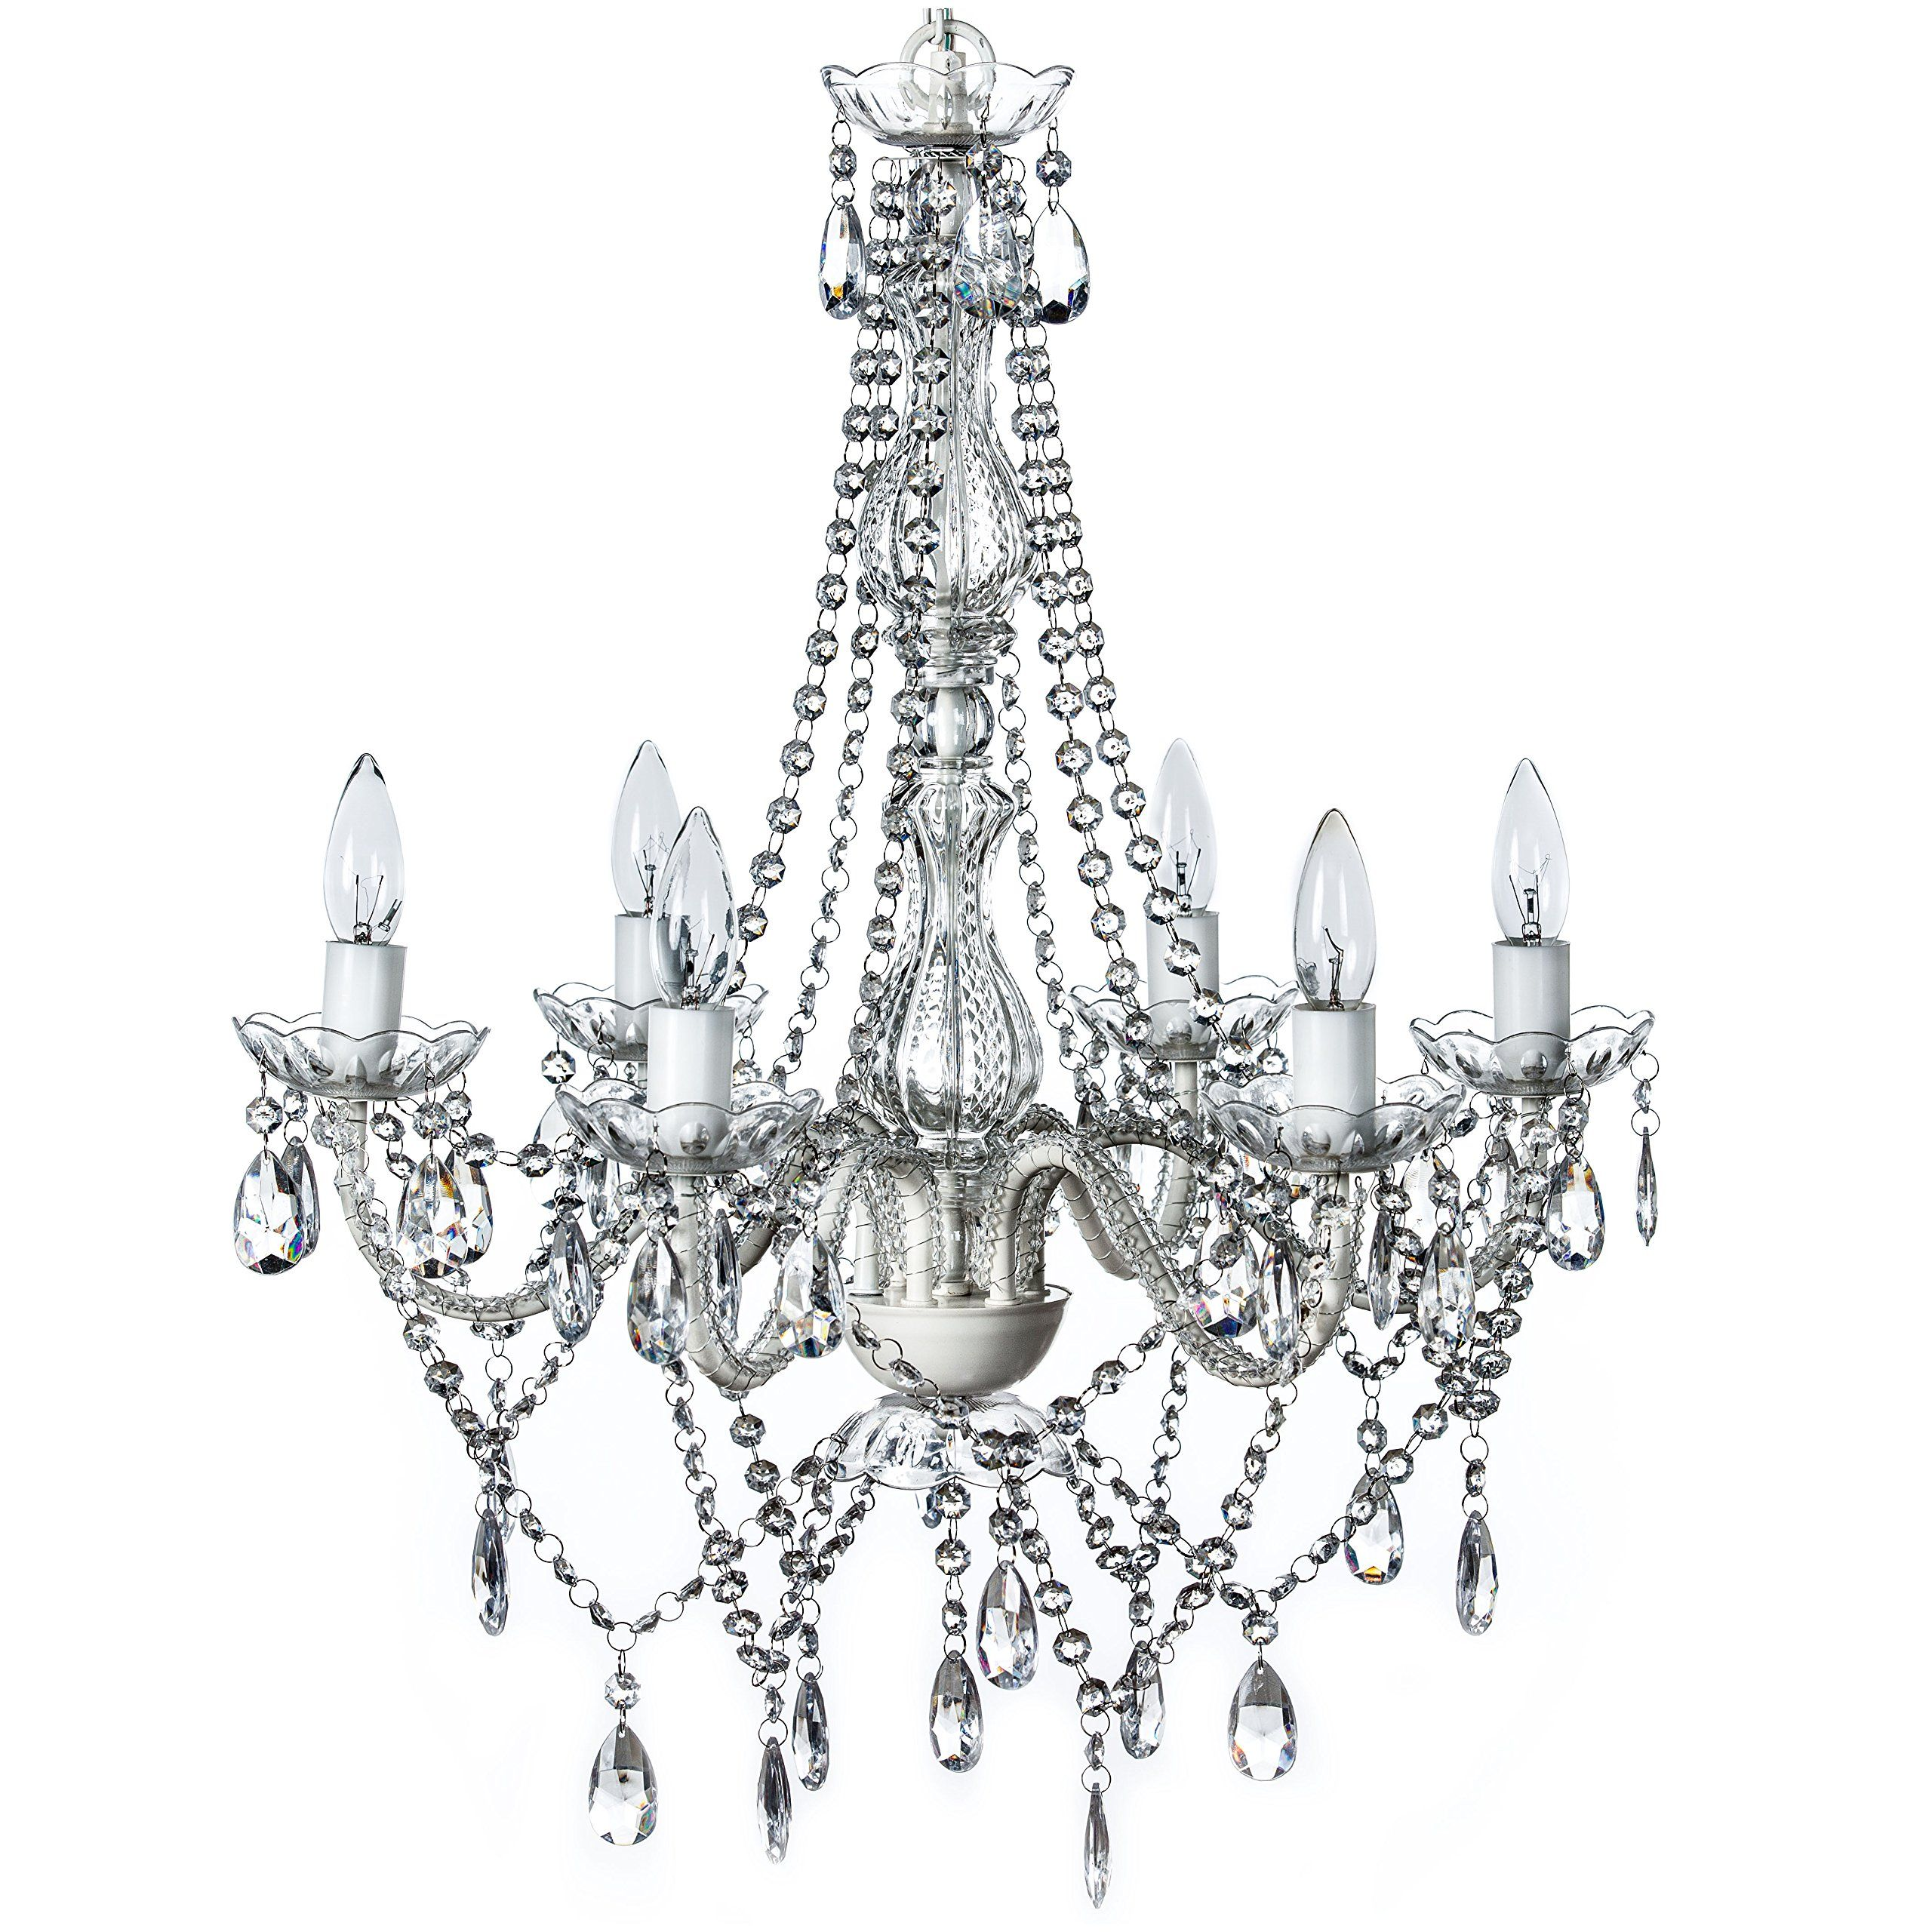 Chandelier Wedding Tent In 2020 Traditional Chandelier Candle Styling Chandelier For Sale